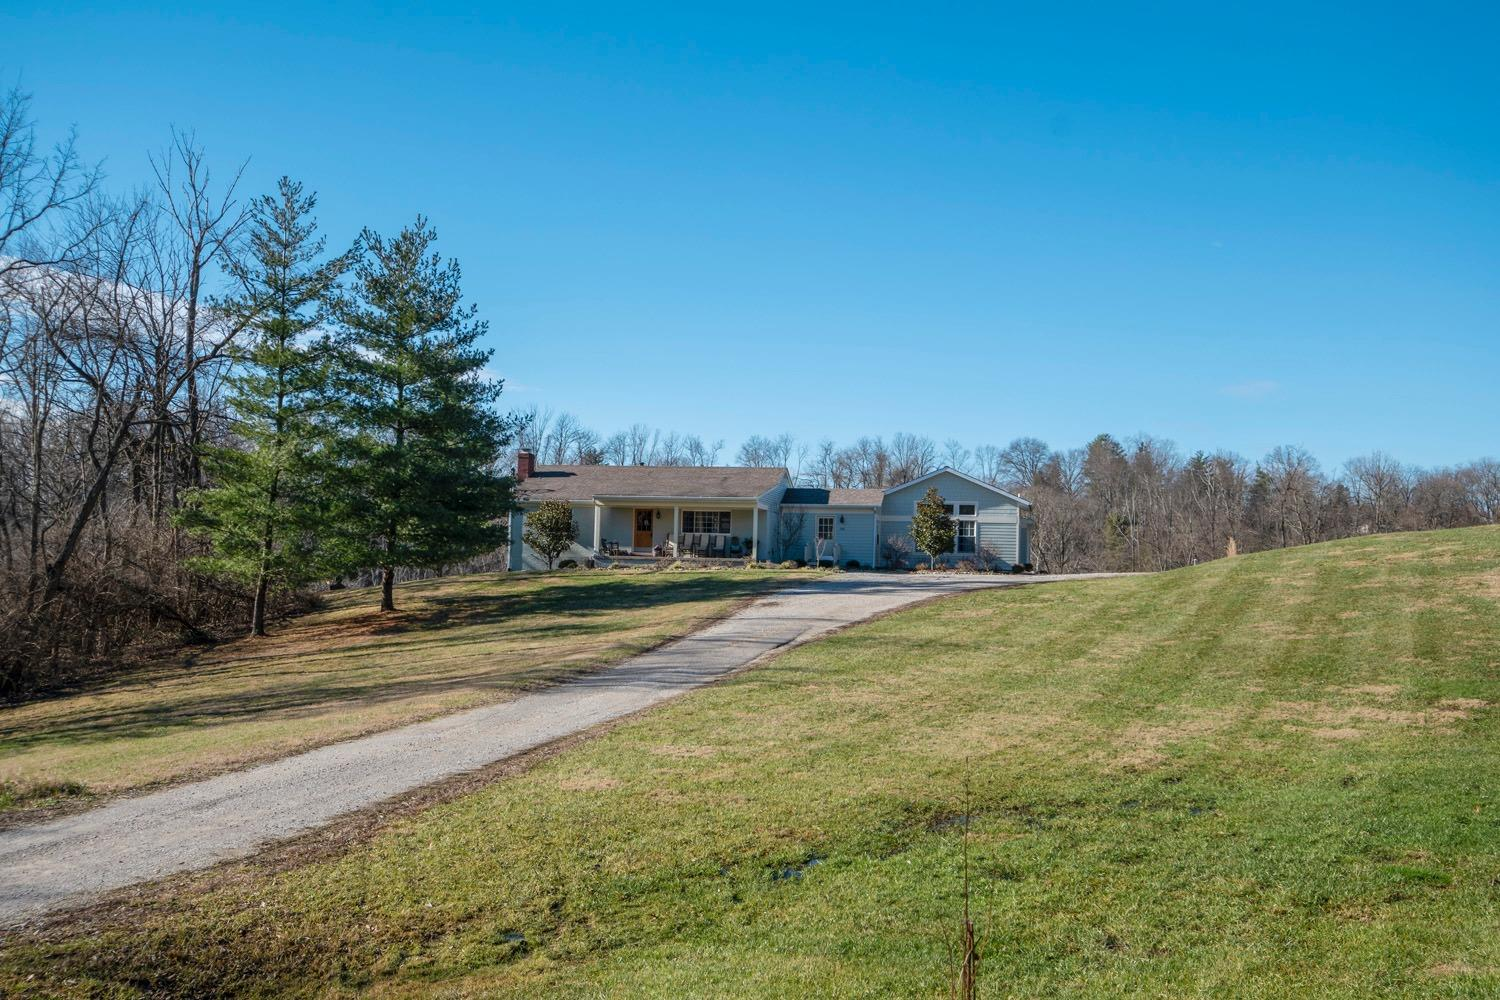 Photo 1 for 2101 Van Blaricum Rd Bridgetown, OH 45233